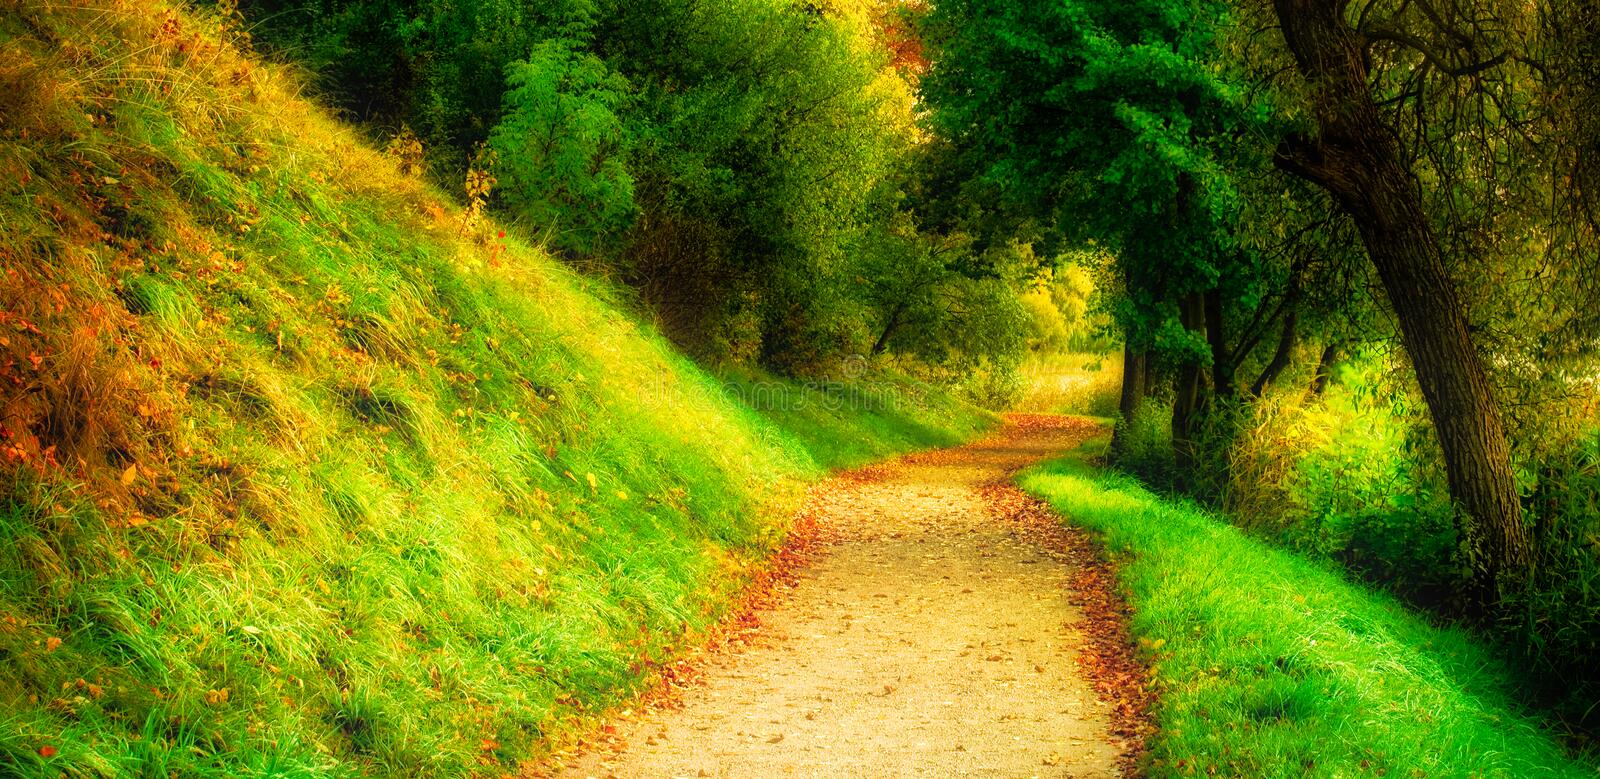 Forest path, scenic nature landscape stock image